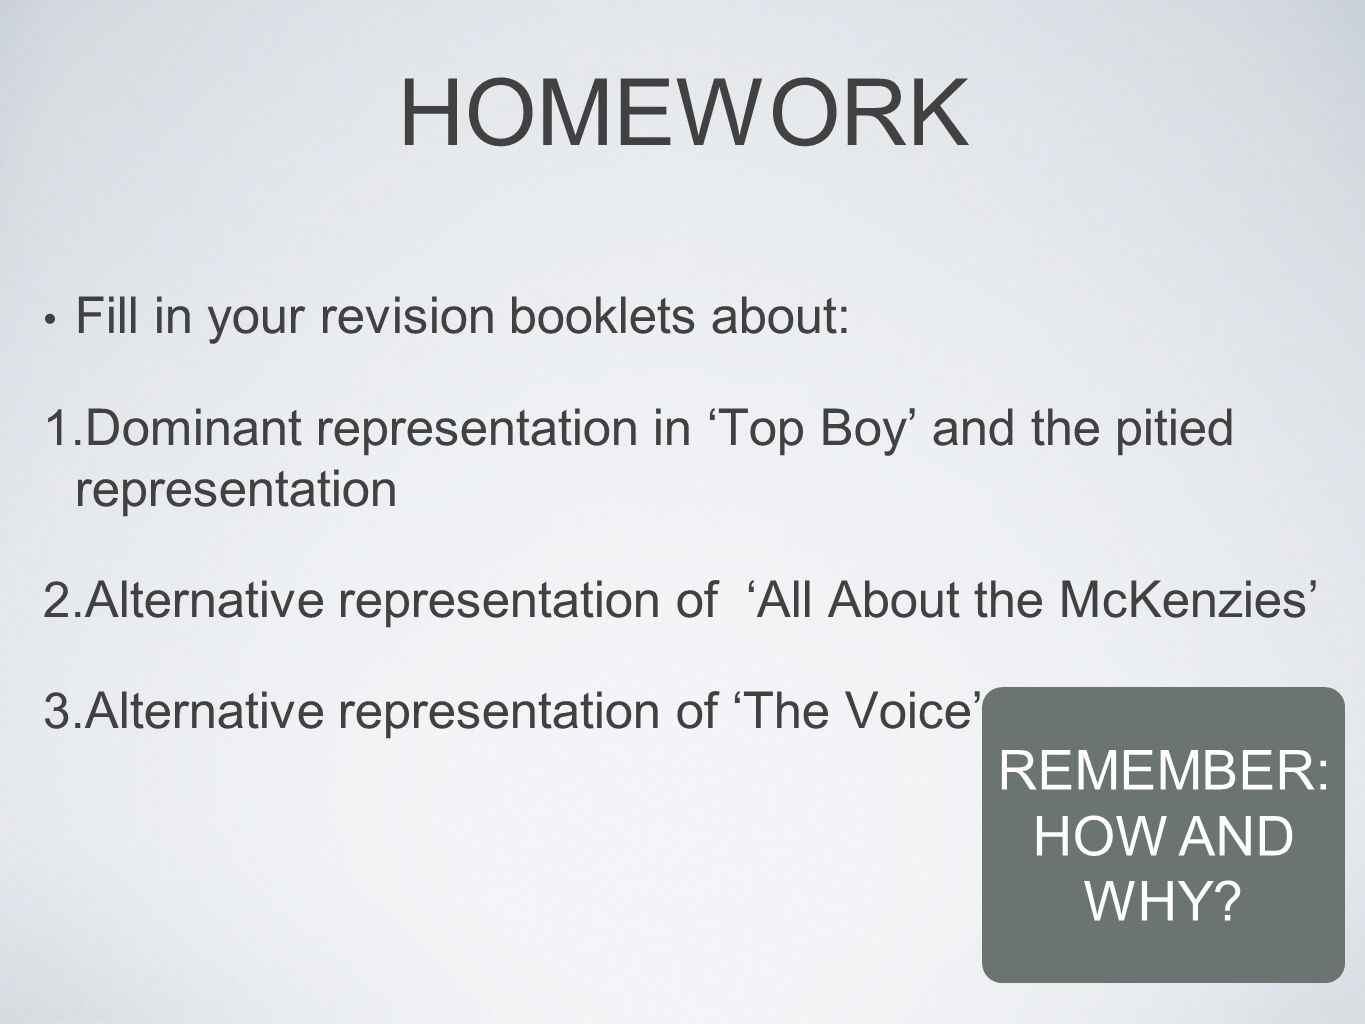 Fill in your revision booklets about: 1.